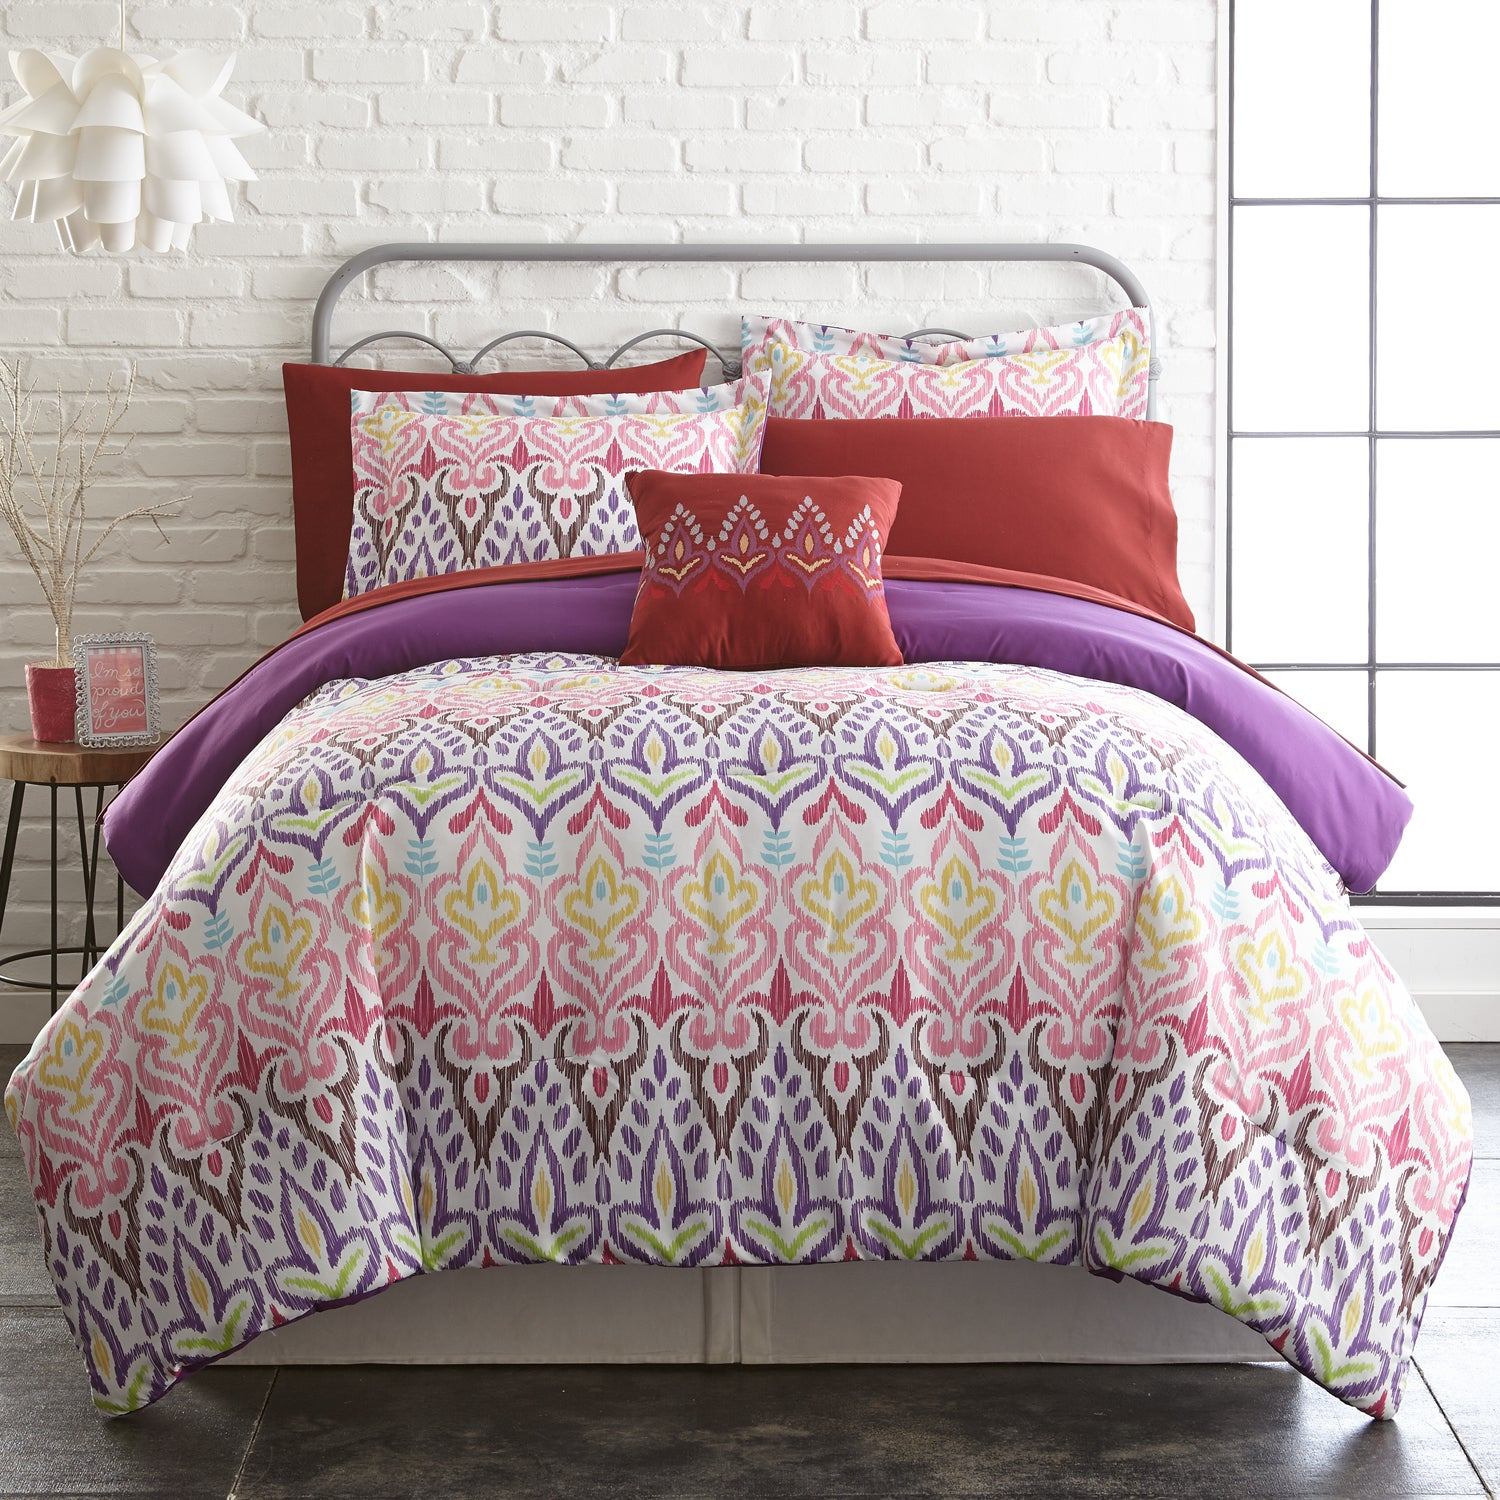 duvet key palms quilt duvets bedroom vera bedding winsome bath print white under silver comforter full largo covers pintuck fabulous denim euro queen size quilts serenity king blue bahama p design for x ae of wonderful bimini your curtain amazon shams cover tommy wang jaipur unisex tribal sets